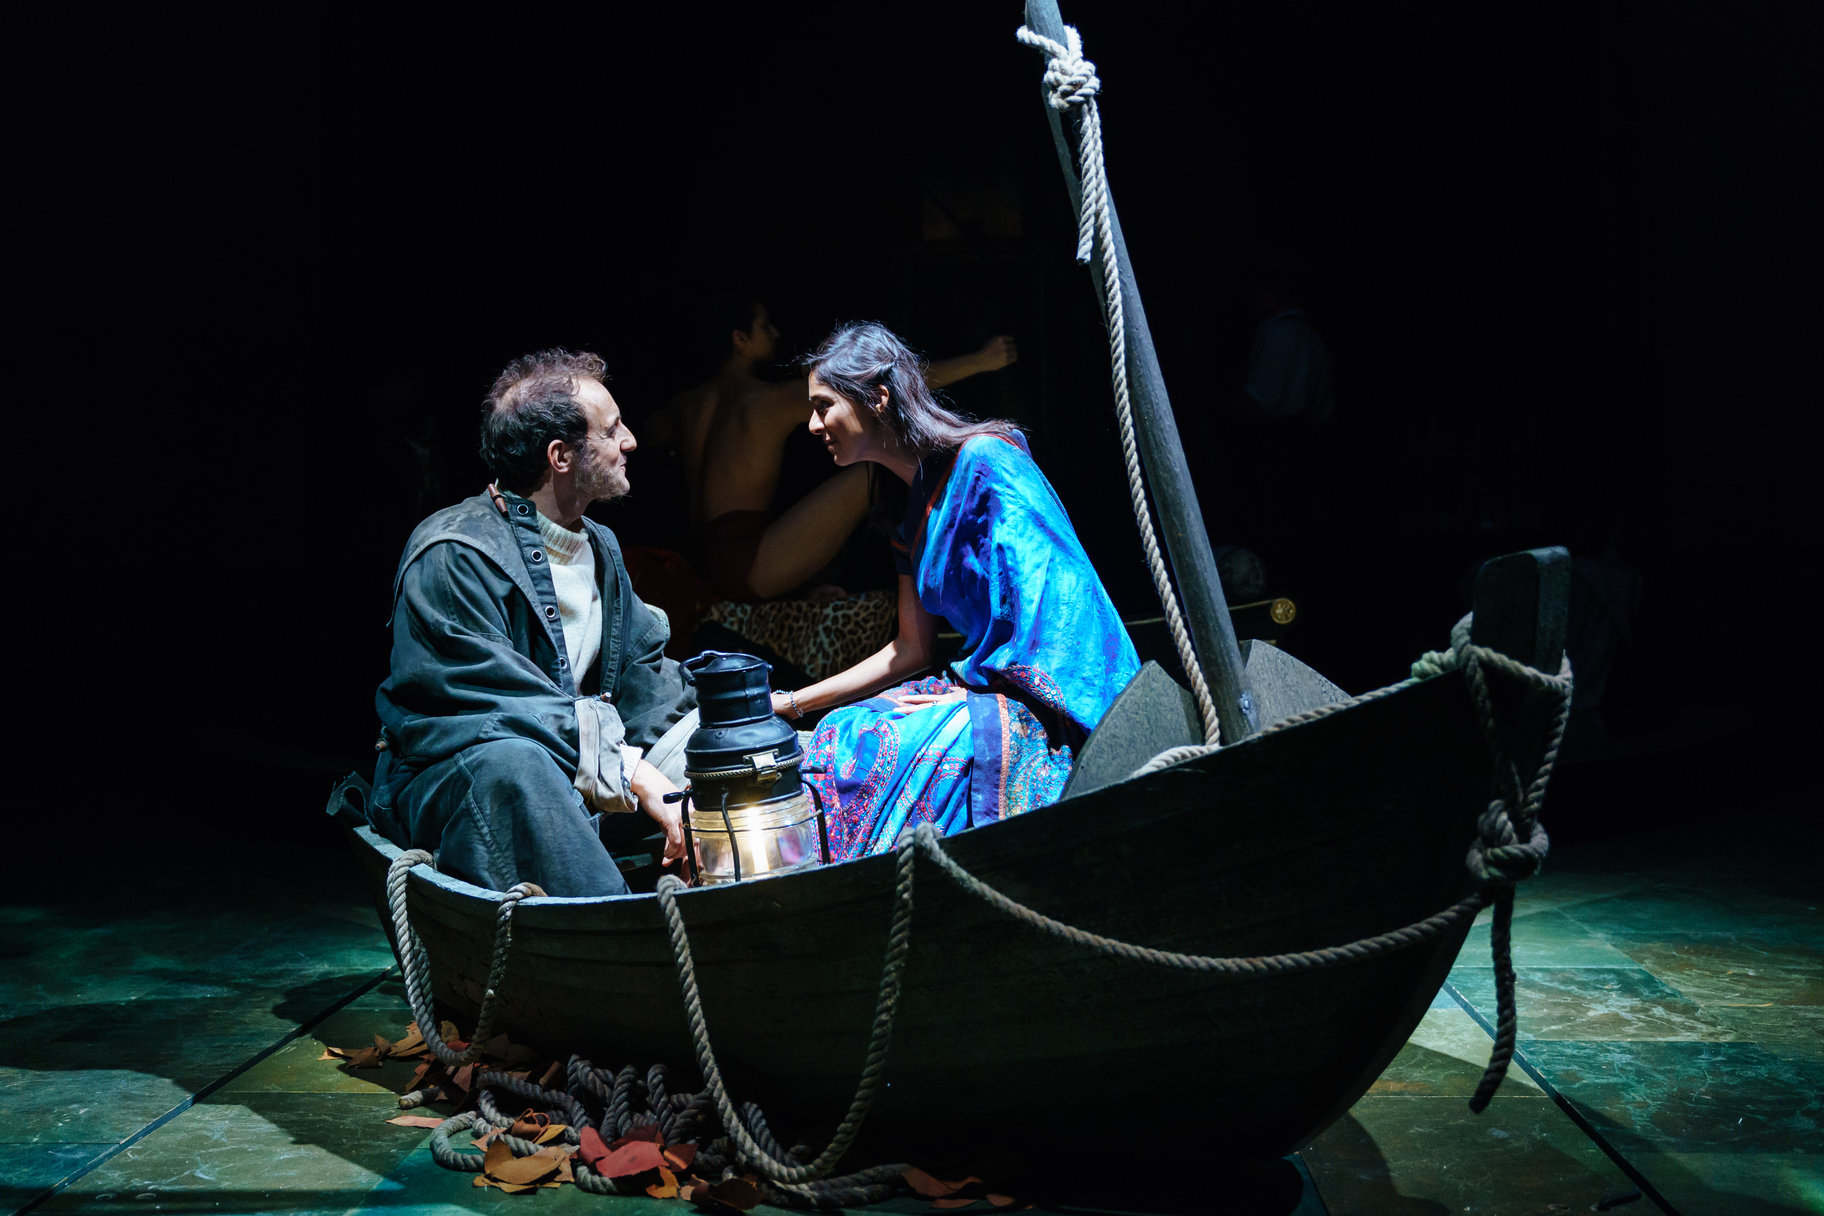 Viola wearing a blue sari and the captain wearing an old coat sit in a small rowing boat on the shore of Illyria with a lantern between them in the 2017 production of Twelfth Night.